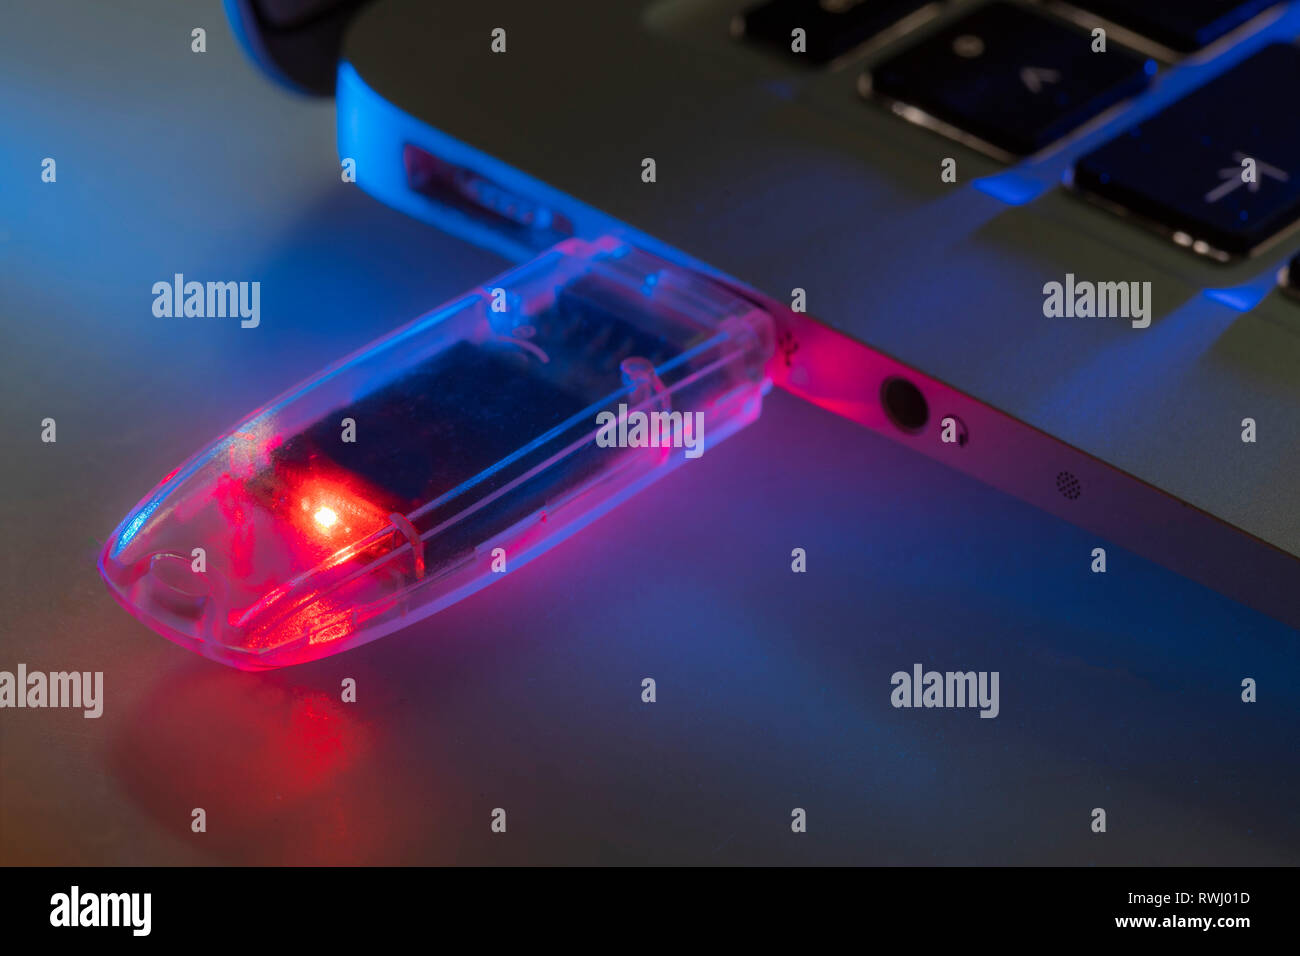 USB memory stick, in a laptop computer, - Stock Image